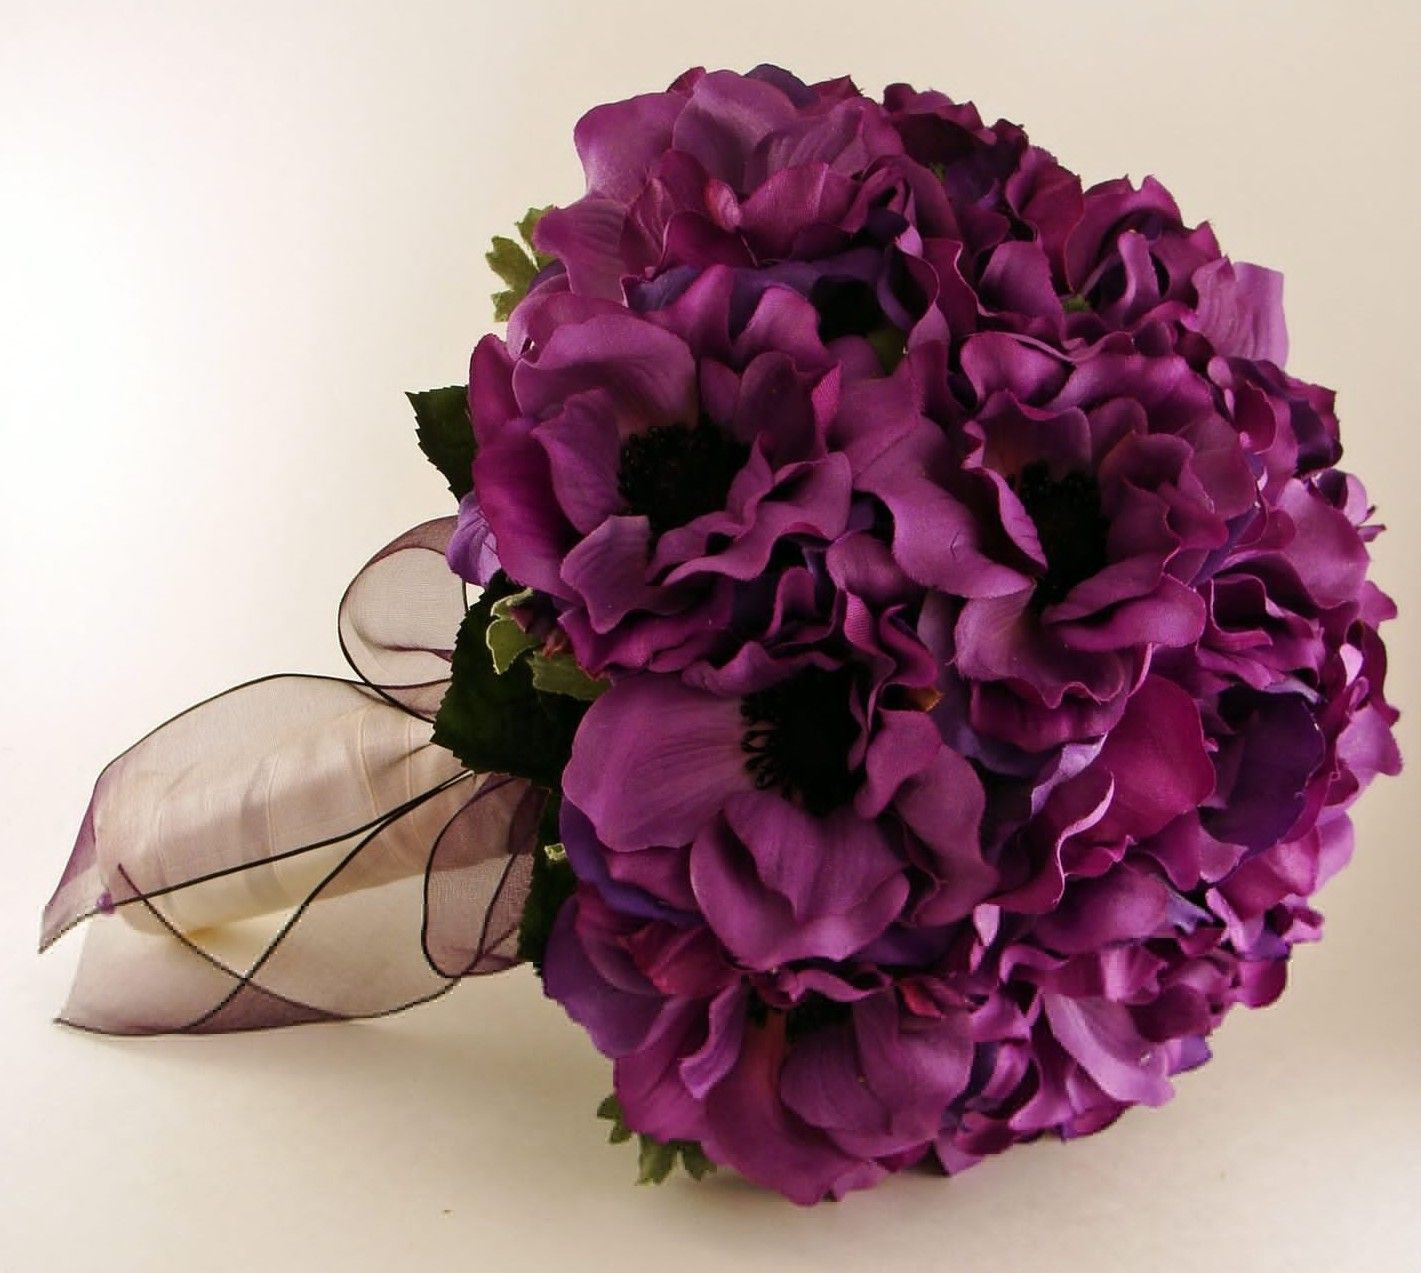 Bold purple purple wedding bouquets flowers wedding photos bold purple purple wedding bouquets flowers wedding photos pictures by weddingsofjoy izmirmasajfo Images